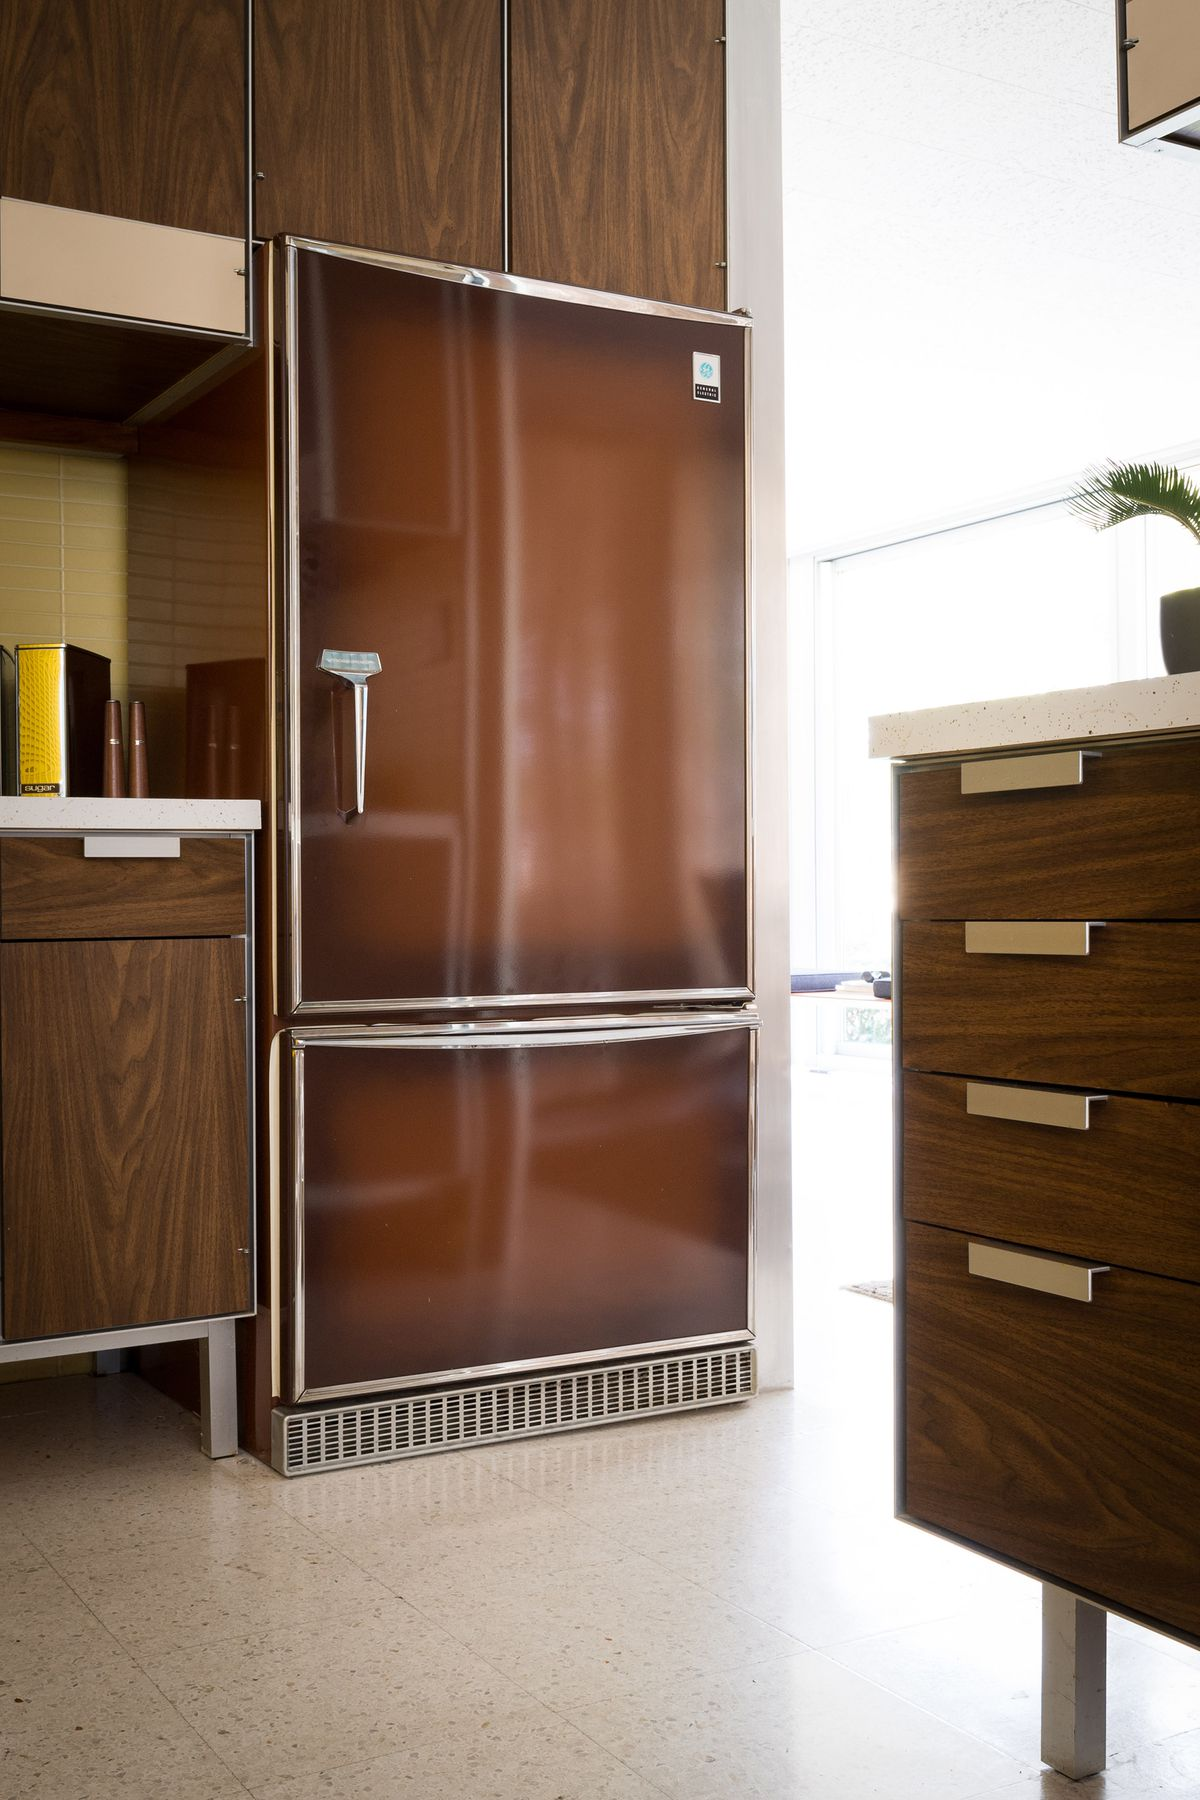 A chocolate brown refrigerator is in the kitchen.